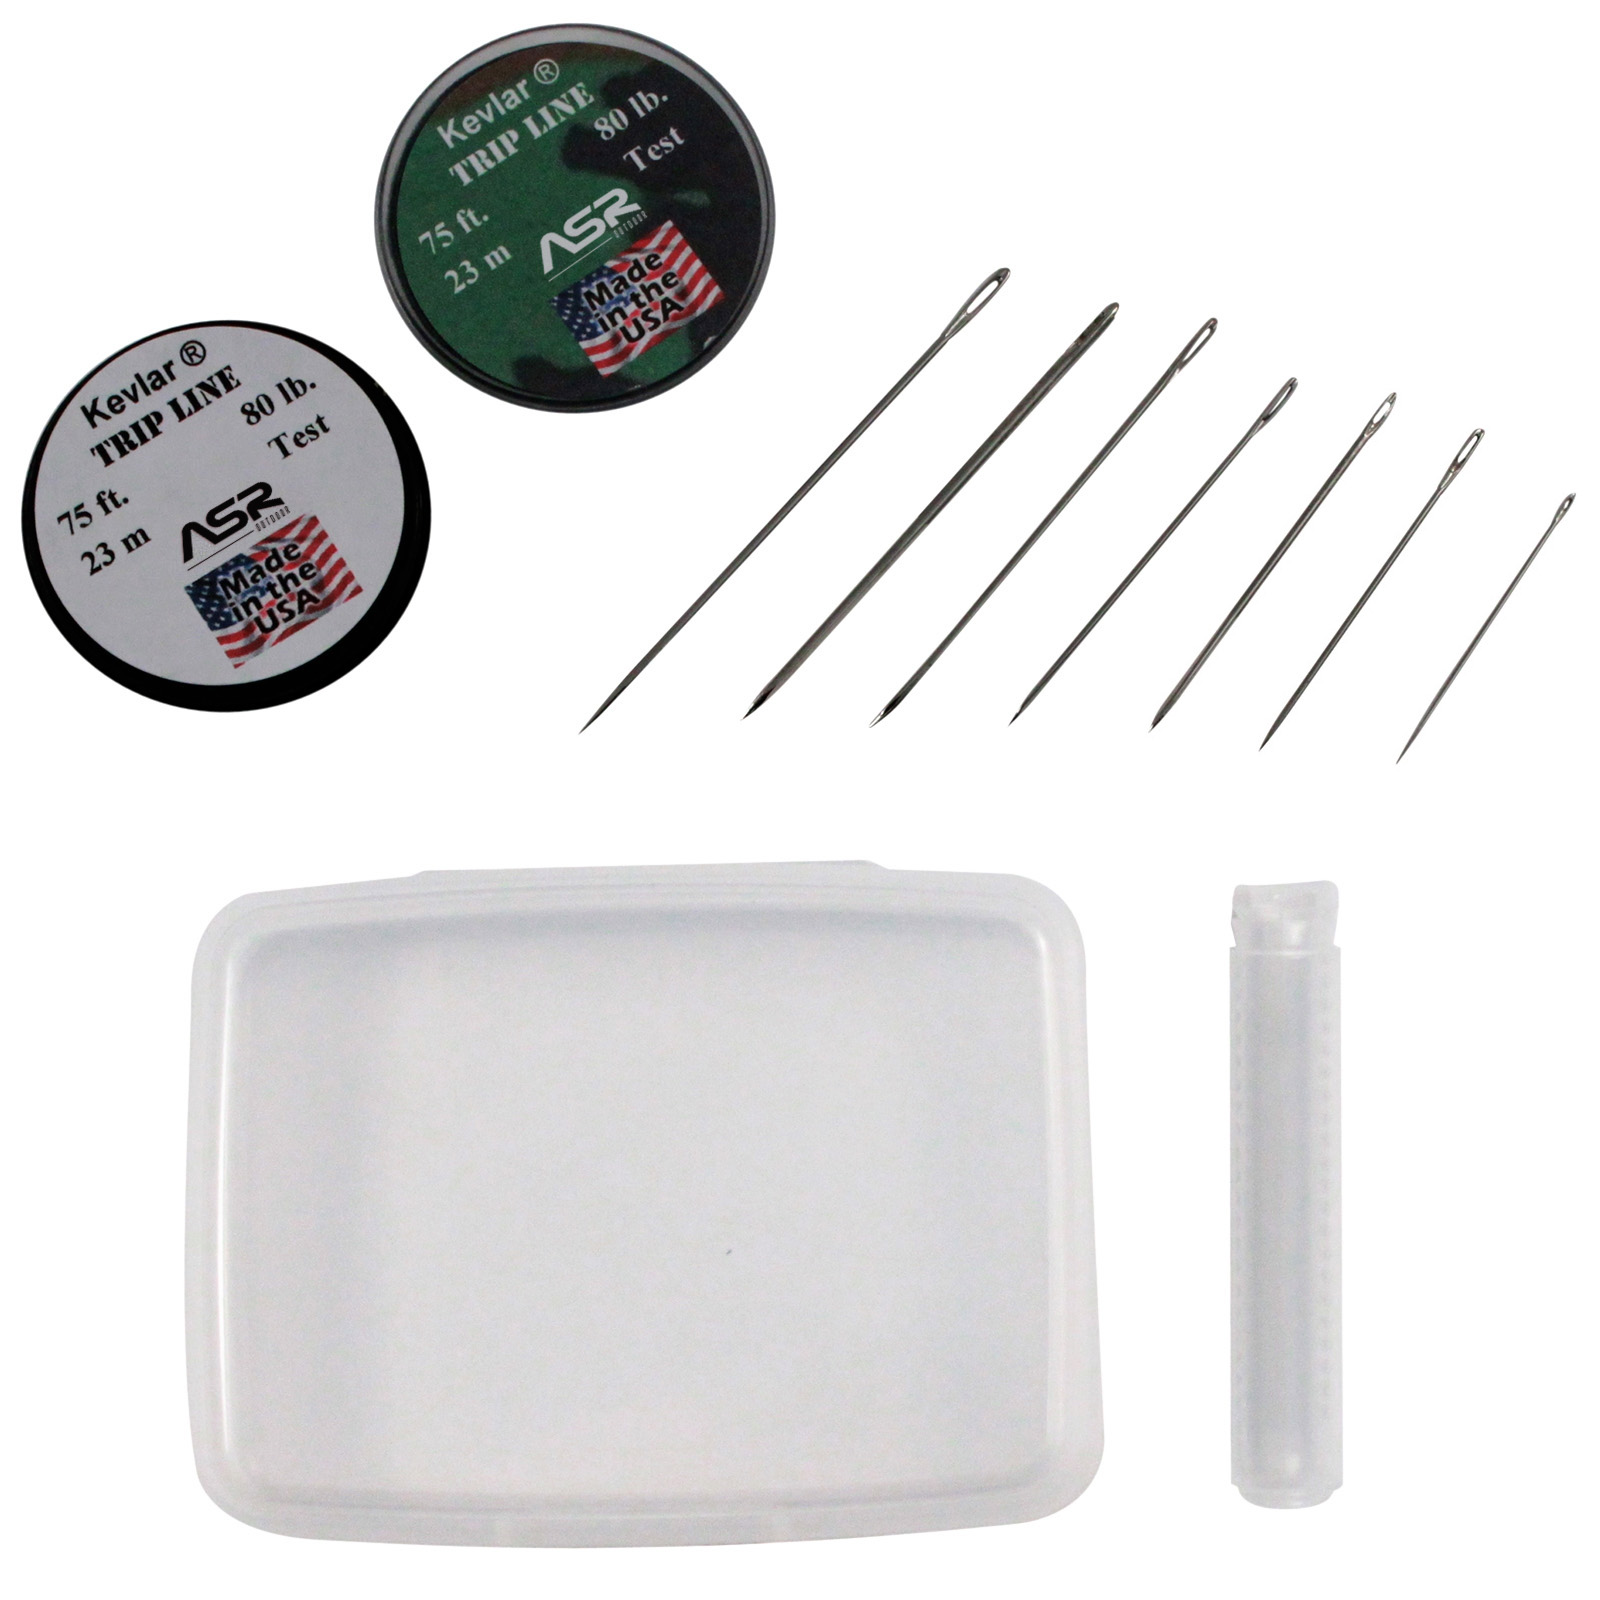 10pc ASR Outdoor Tactical Survival Sewing Kit Stainless Steel Needles